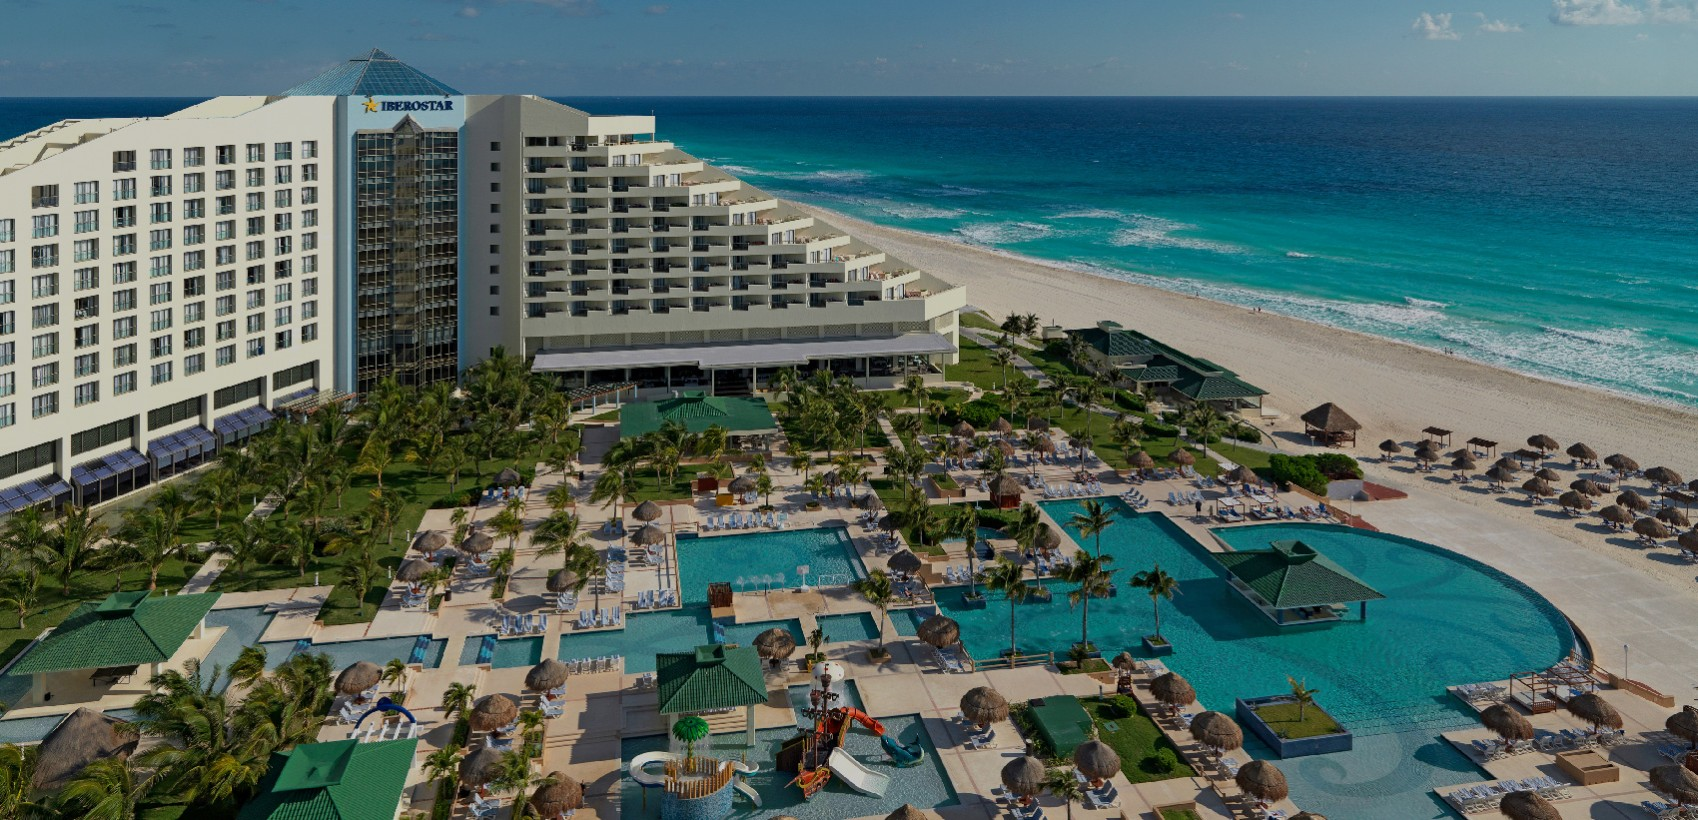 Save with WestJet Vacations on select Iberostar Hotels and Resorts